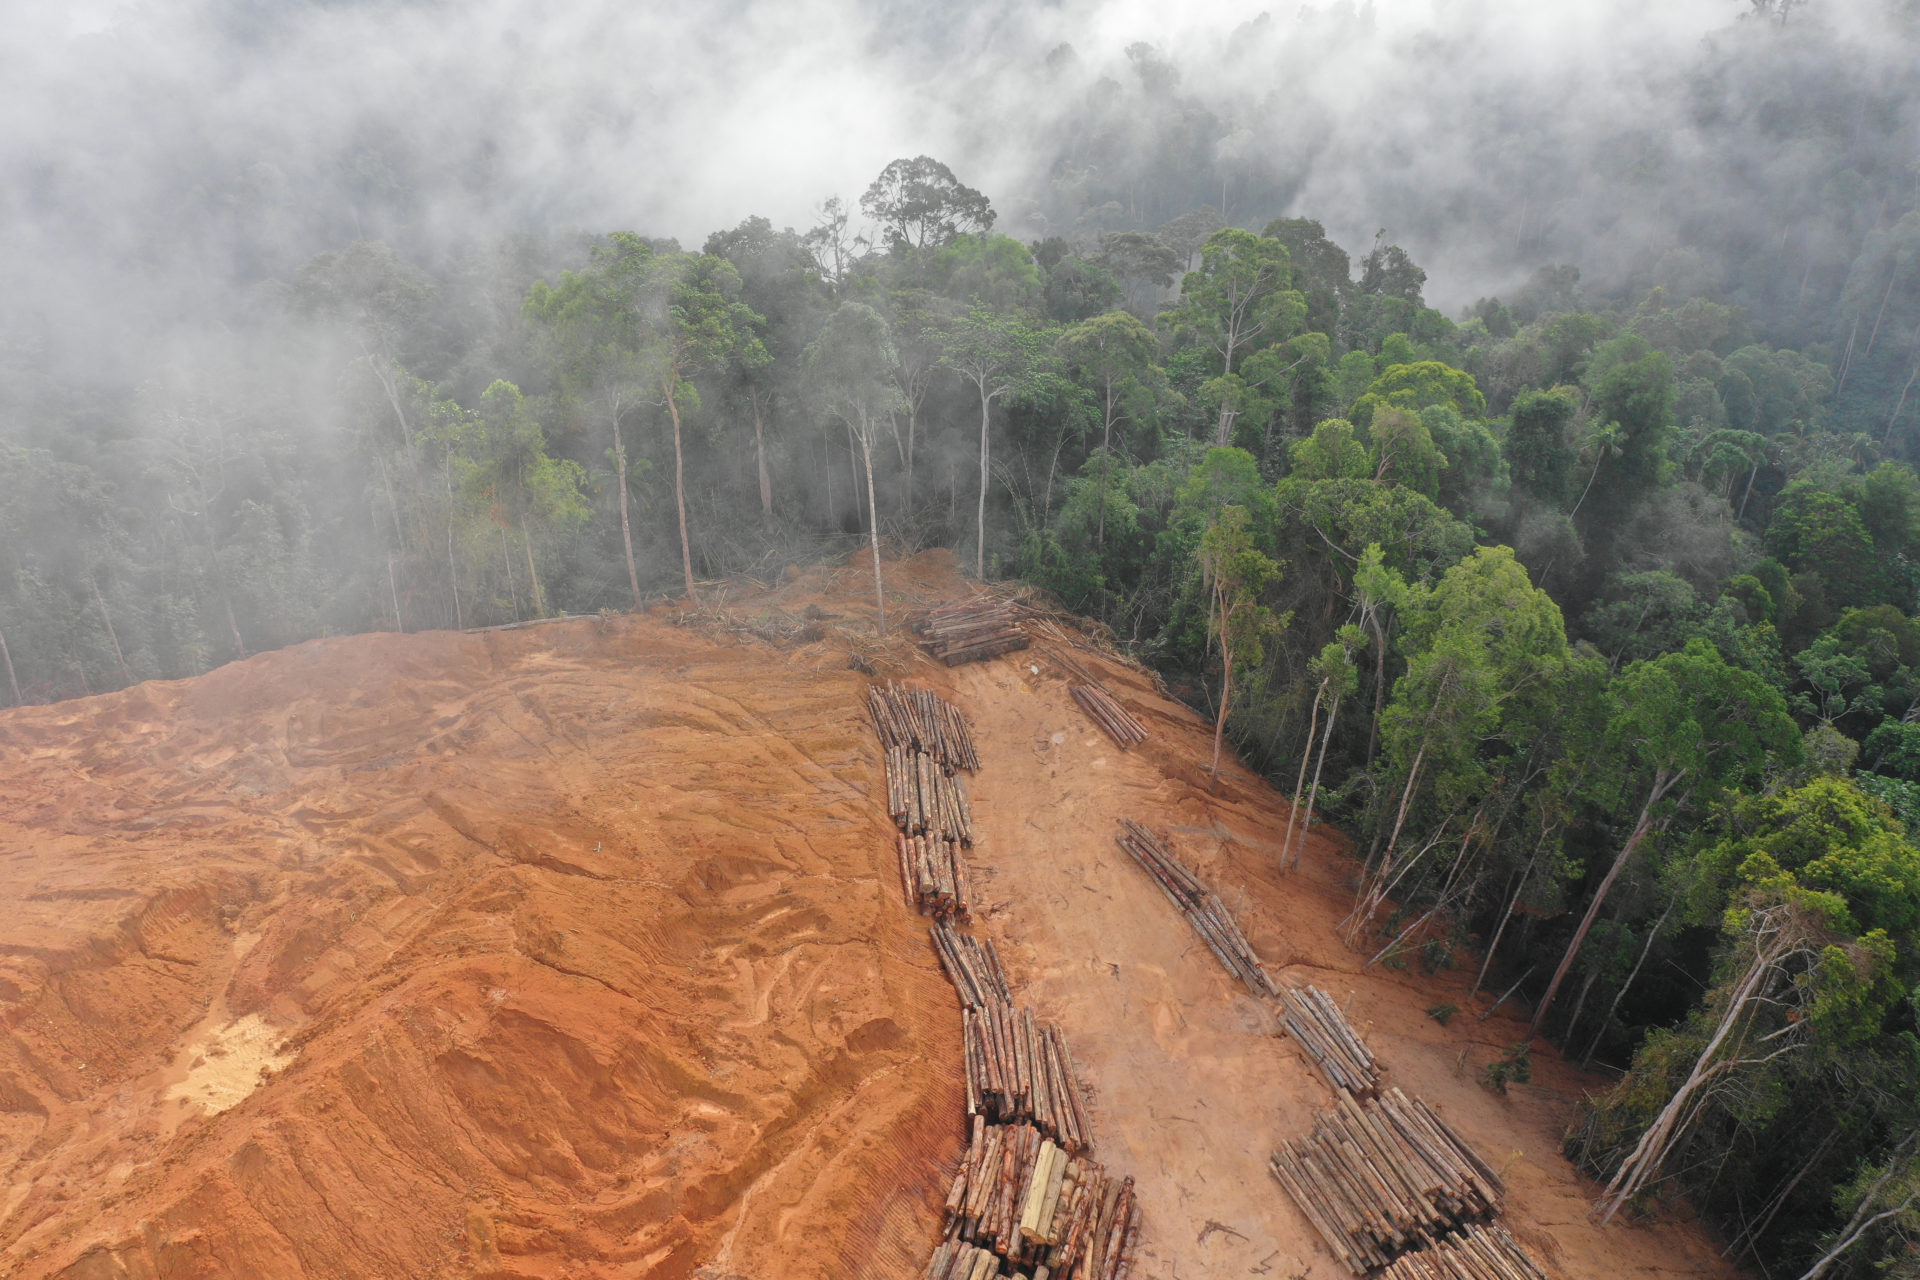 Aerial photo of deforestation.